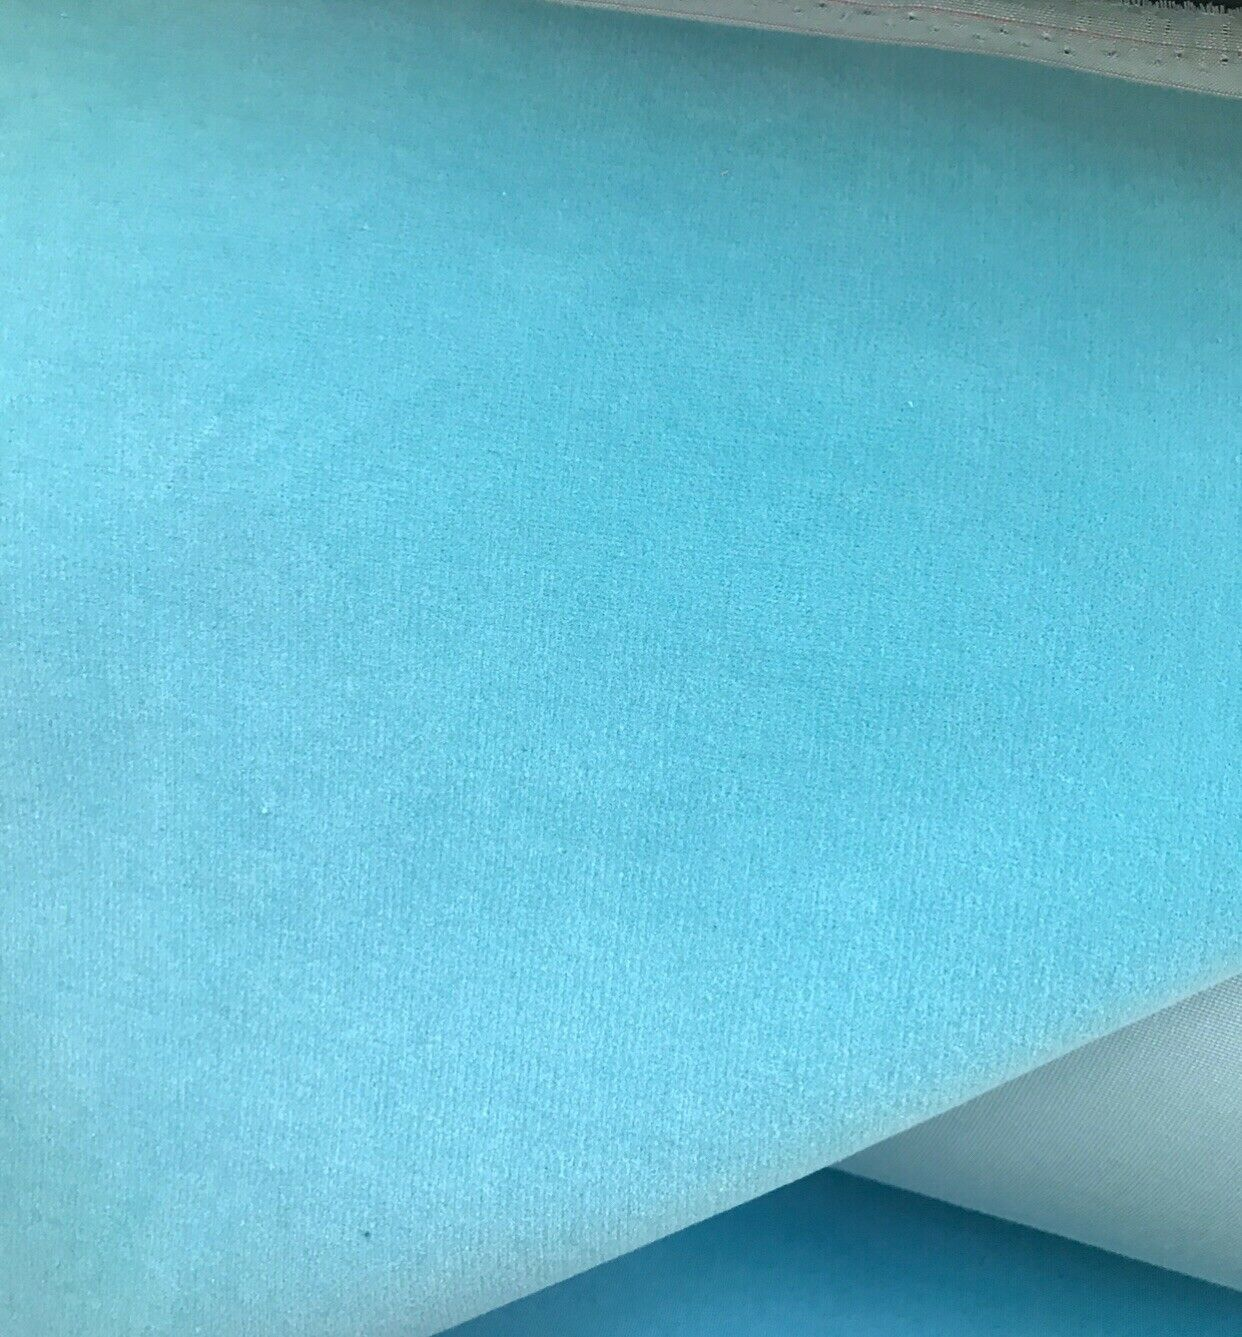 NEW! WATERPROOF OUTDOOR Velvet Upholstery & Drapery Fabric - Tiffany Blue- BTY